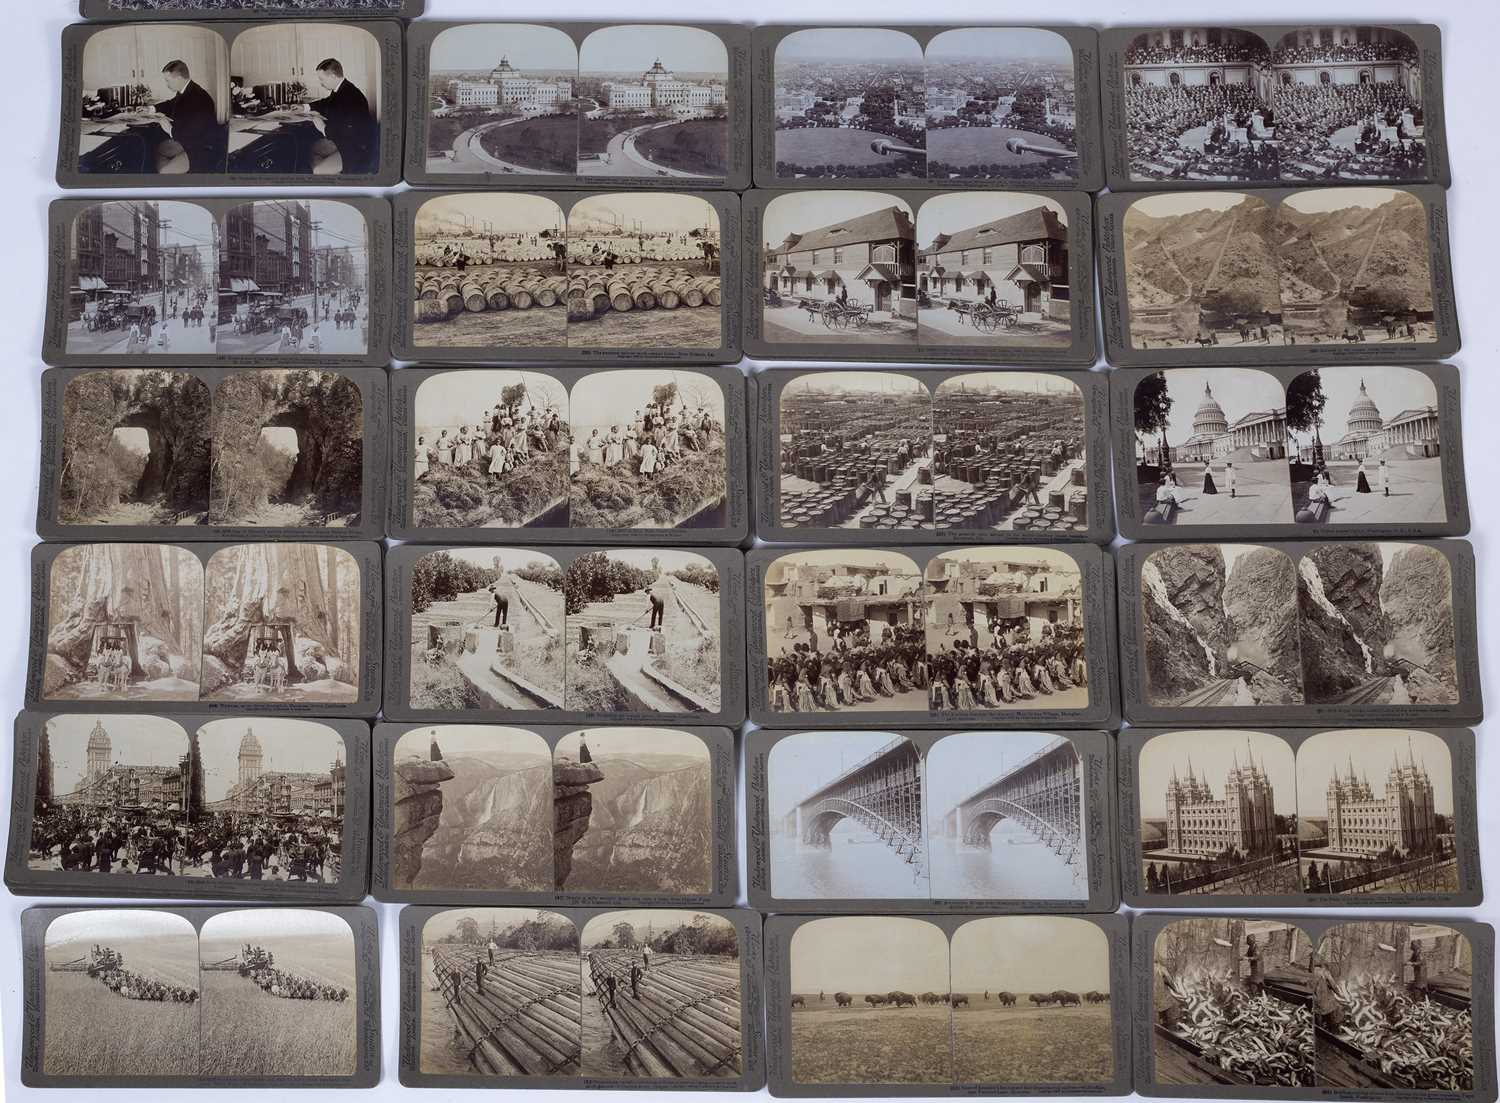 A Stereograph viewer by Underwood & Underwood, together with a large quantity of photo stereoview - Image 2 of 2